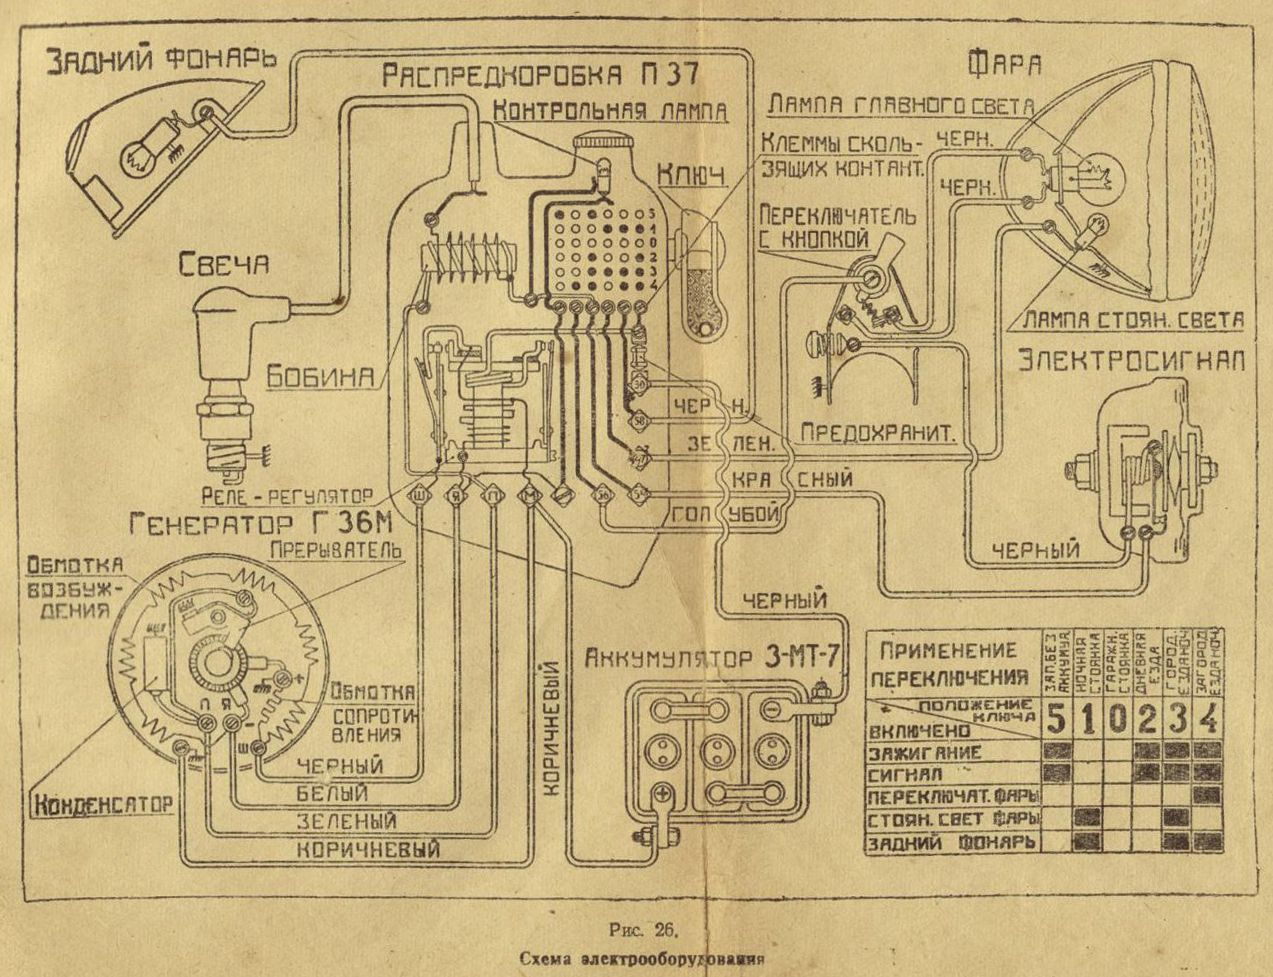 Wiring Diagram Russian From The Izh 49 Manual Pinterest 1942 Chevy